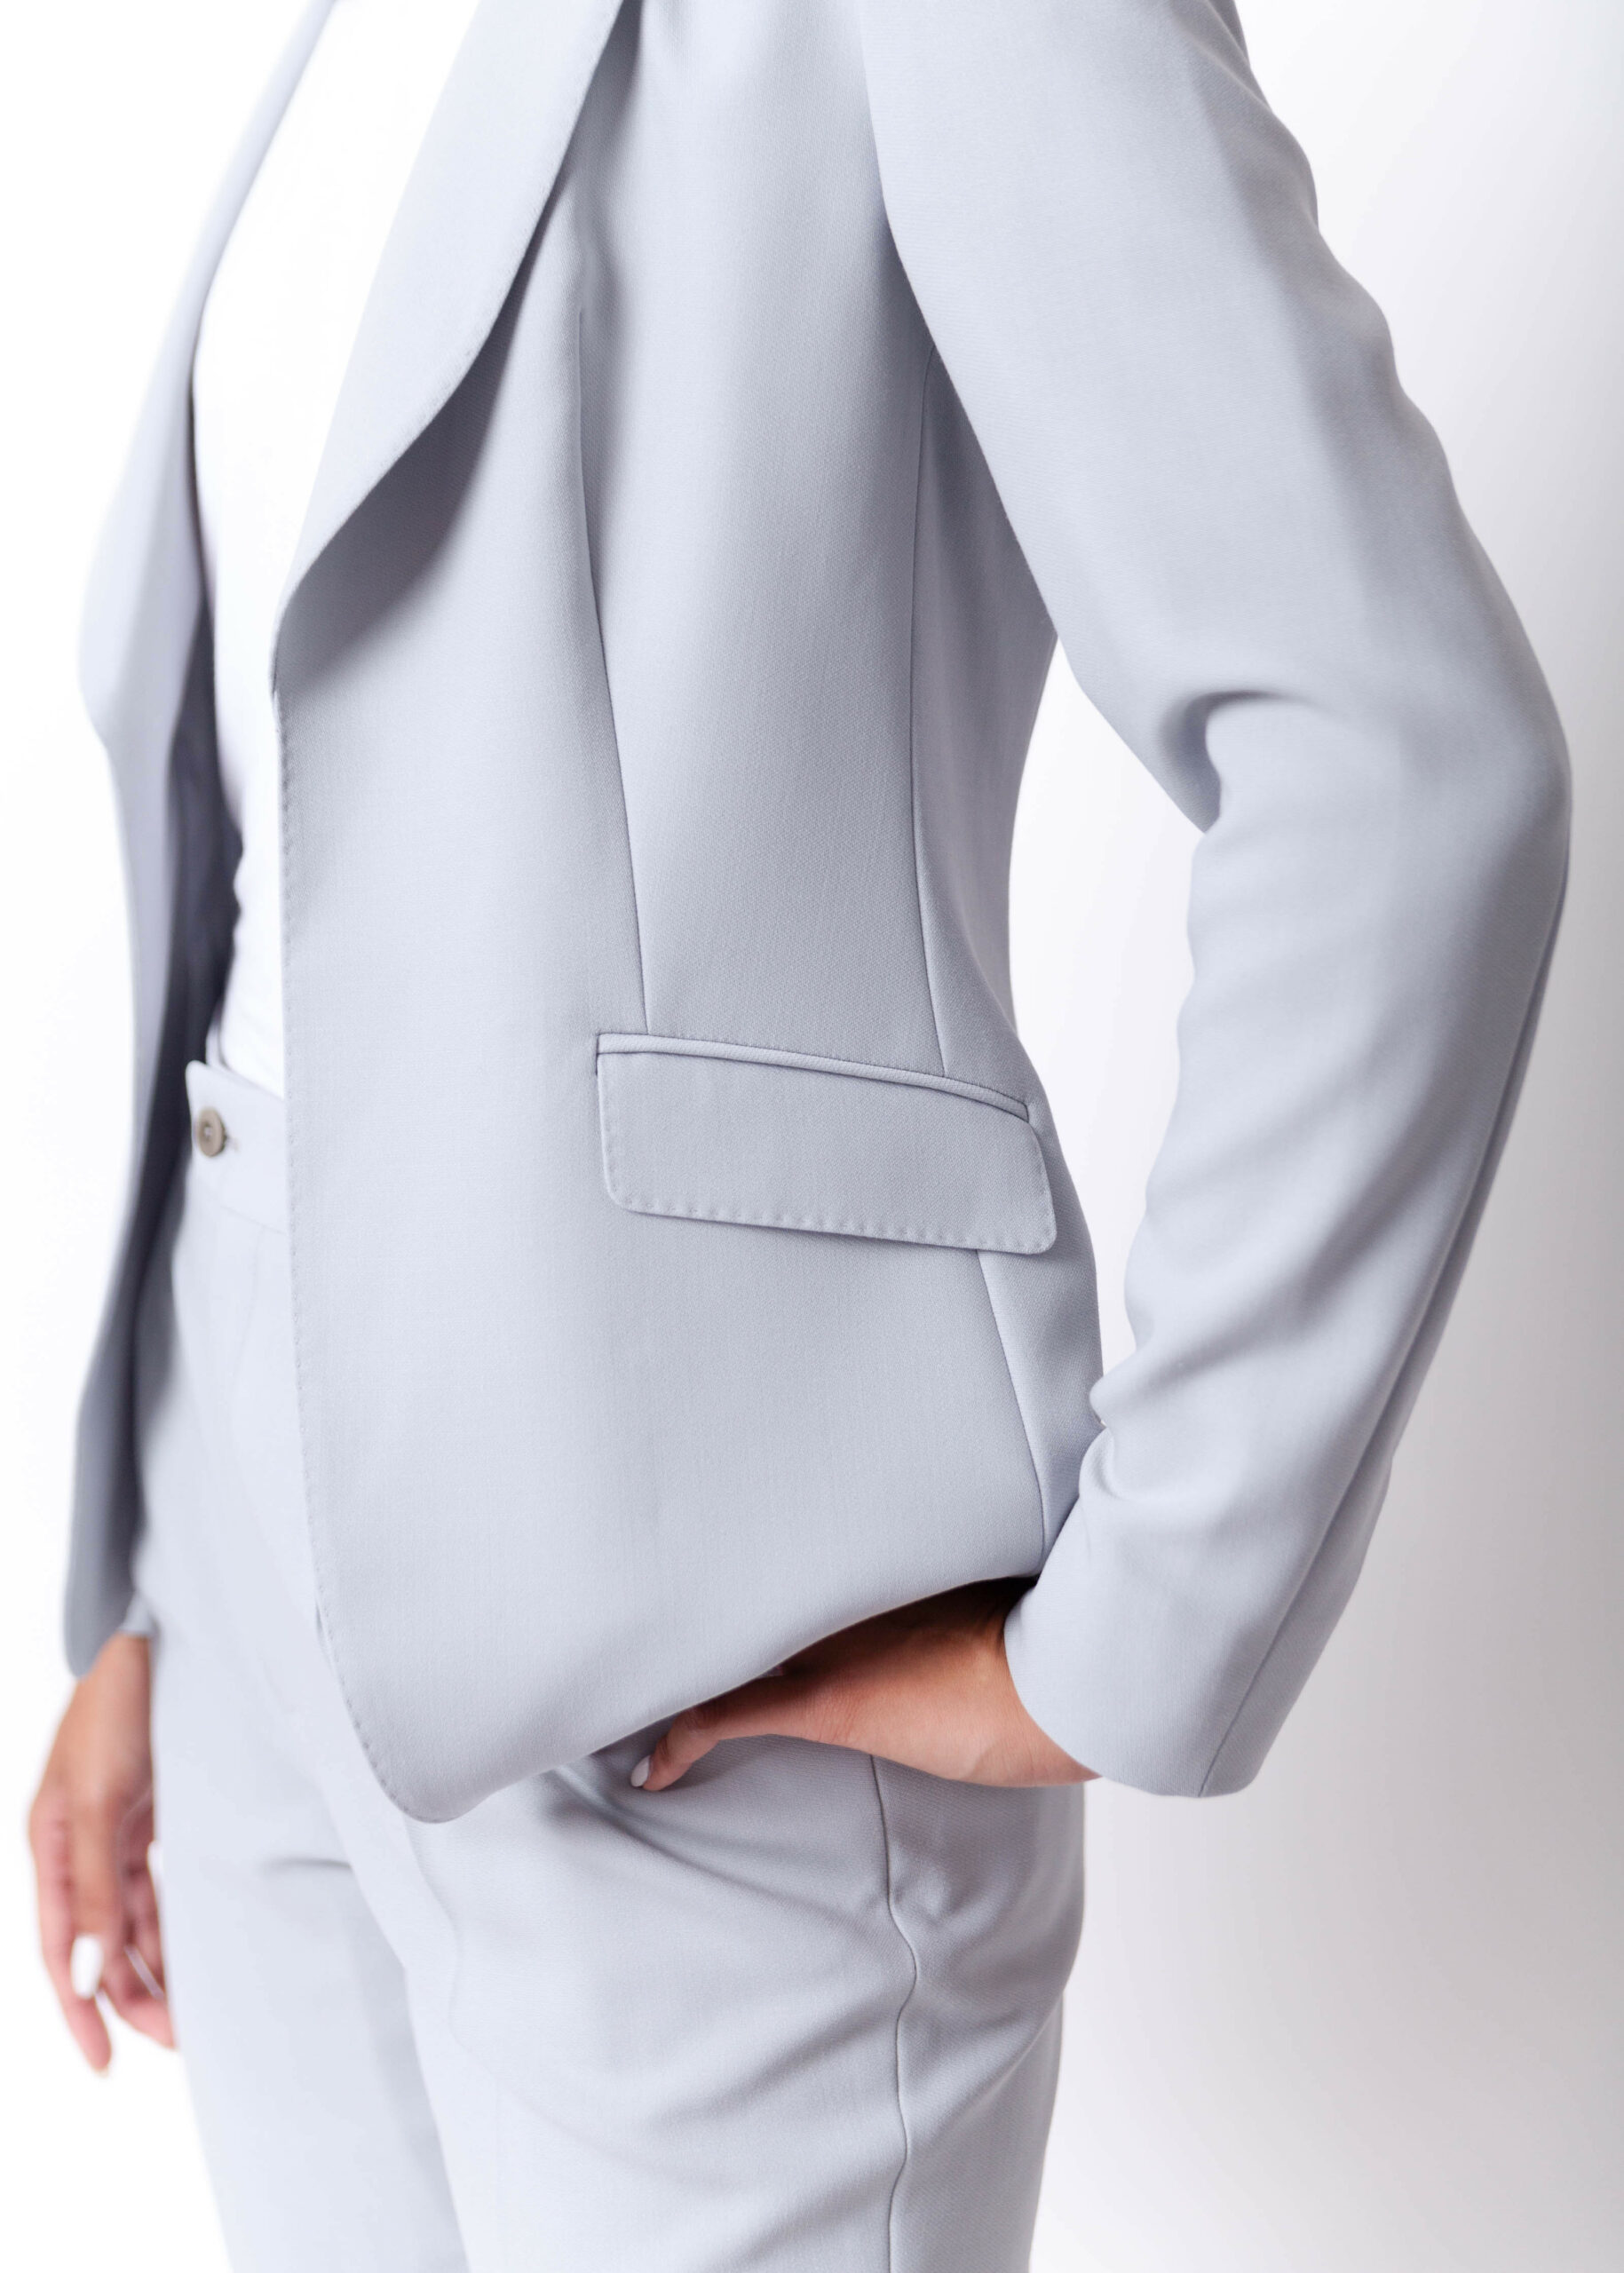 SEWT, luan tolosa, helen siwak, womens suiting, coleman pete, vancouver, bc, ecoluxluv, folioyvr, vancity, yvr, bespoke, made to measure